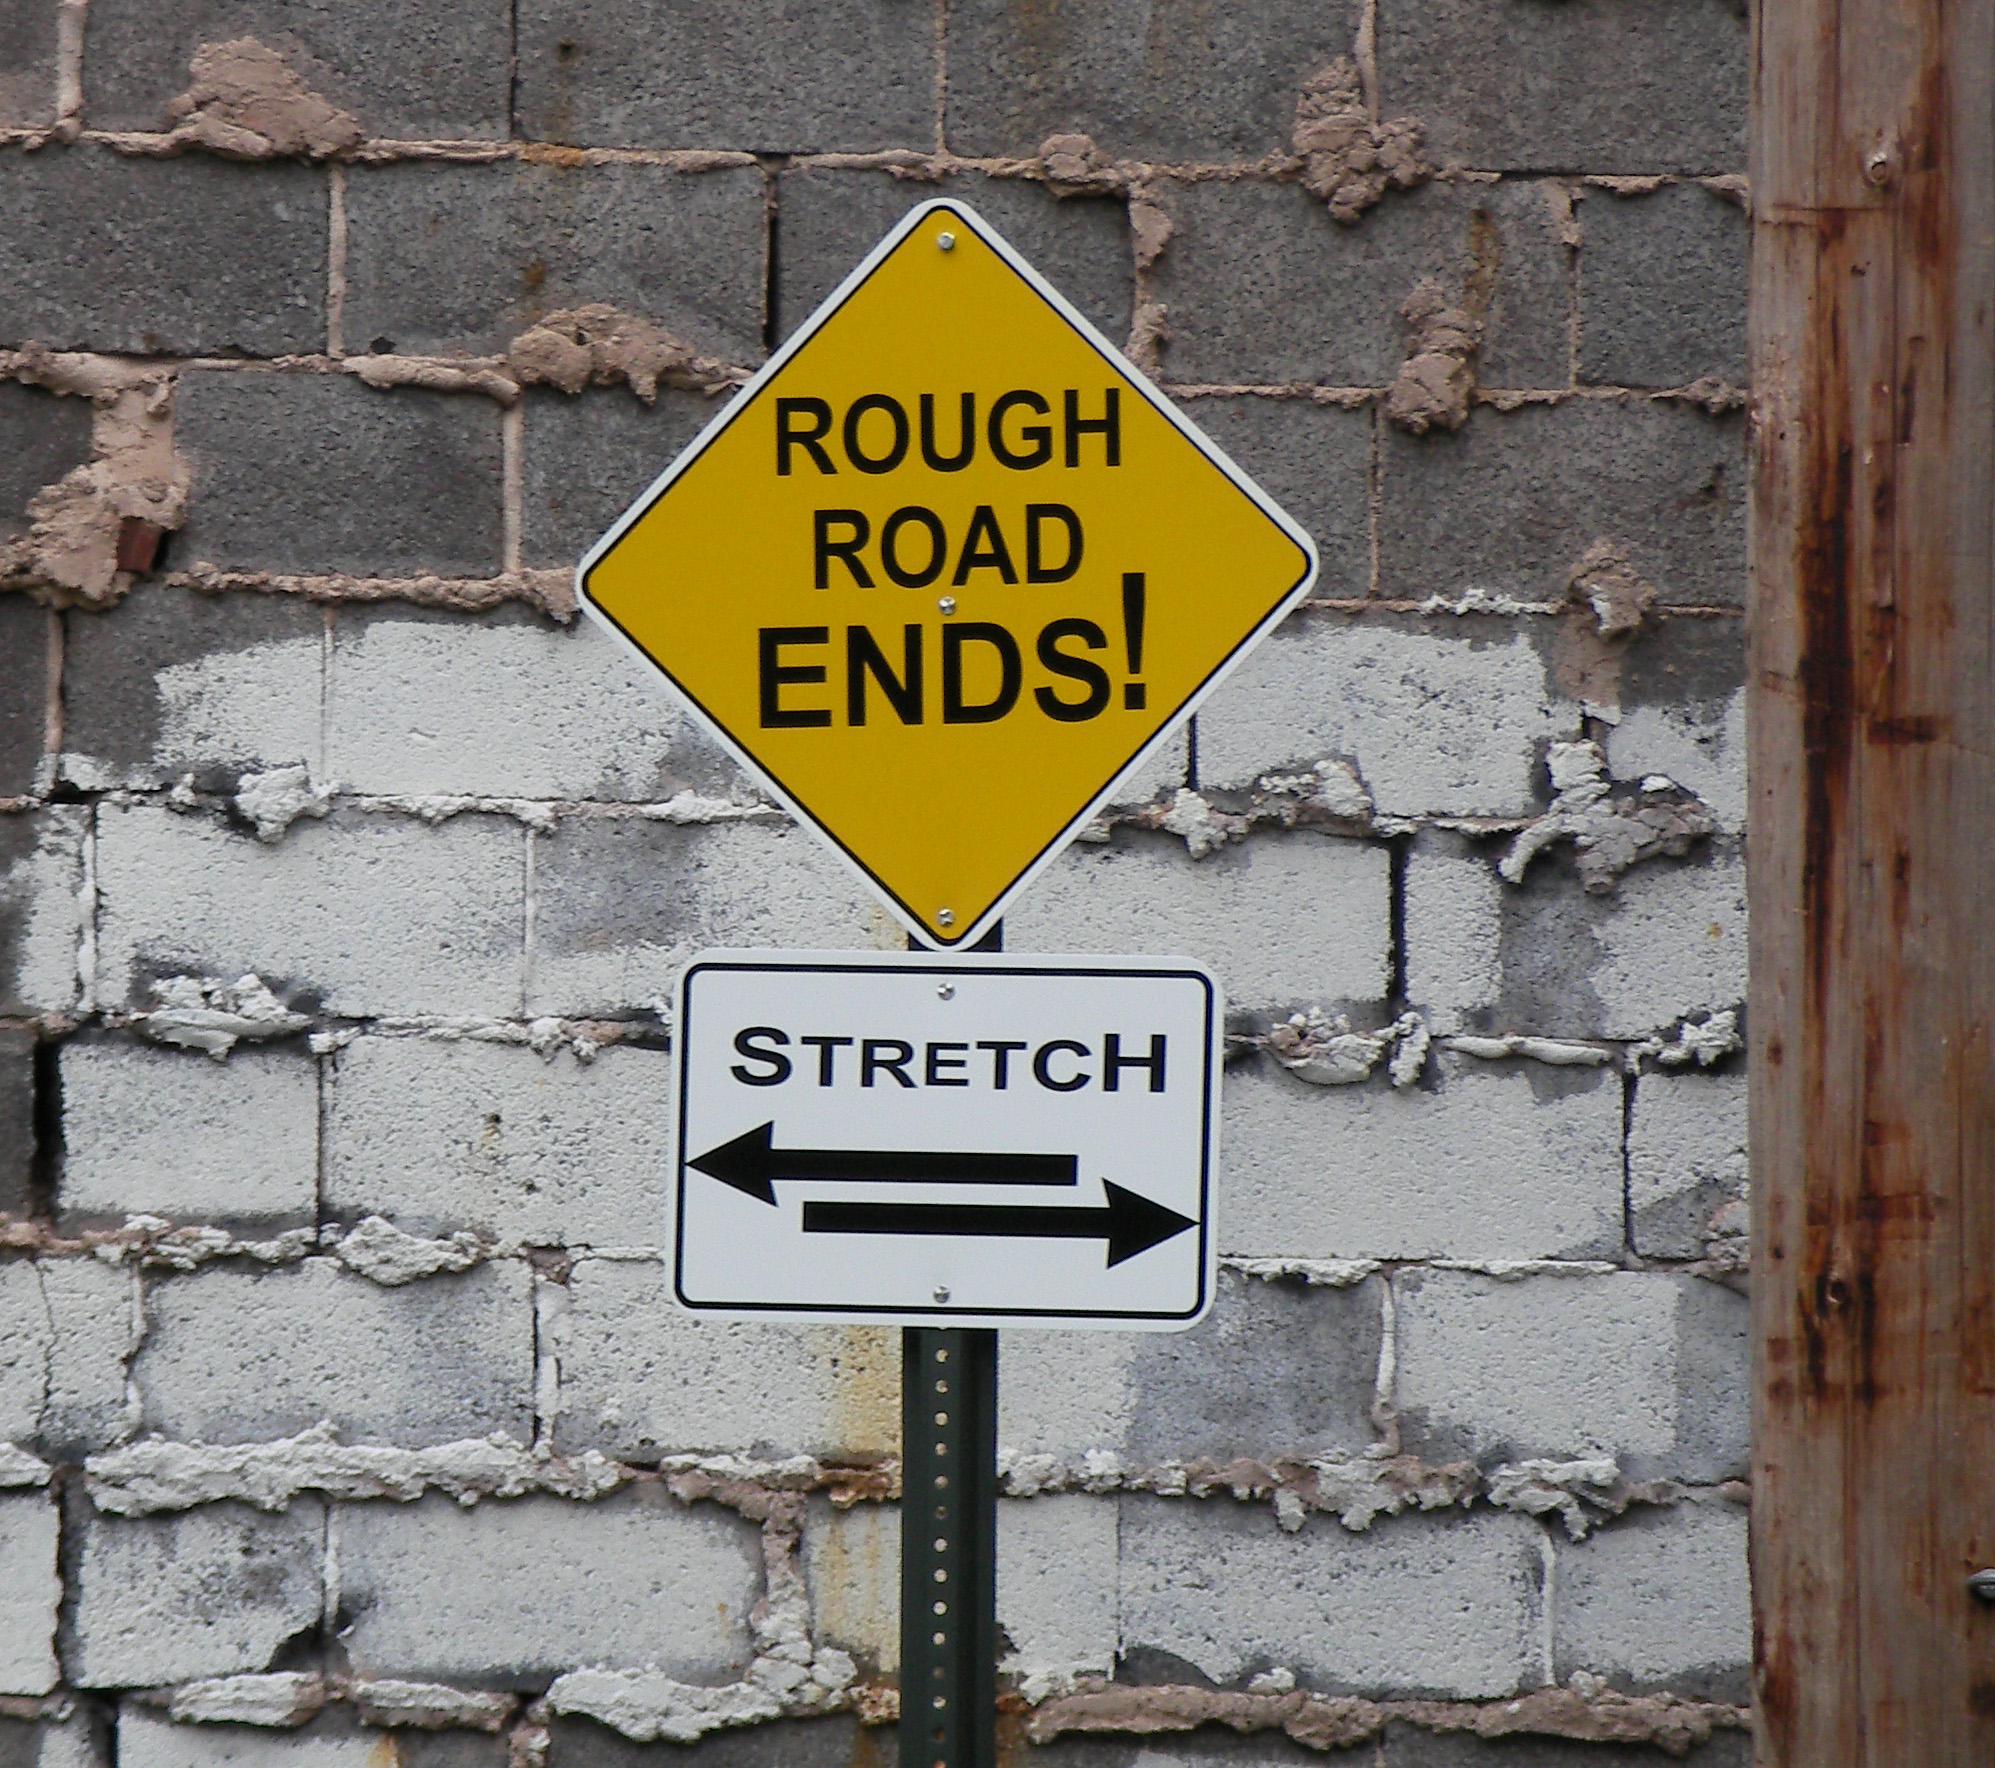 Rough Road Ends. Stretch.